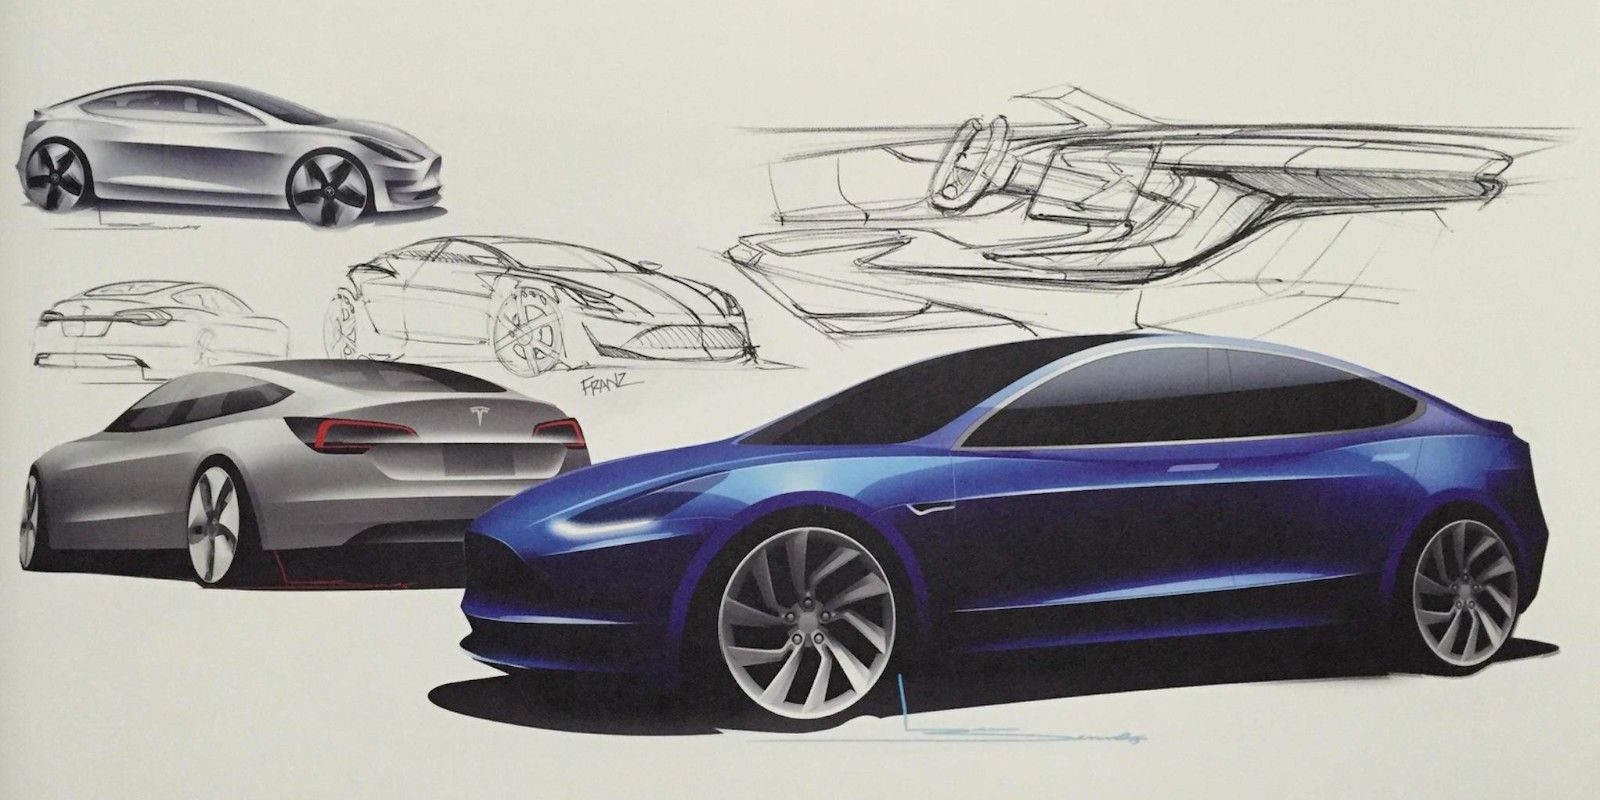 Tesla will open a European design center in Germany, in addition to US & China - Electrek